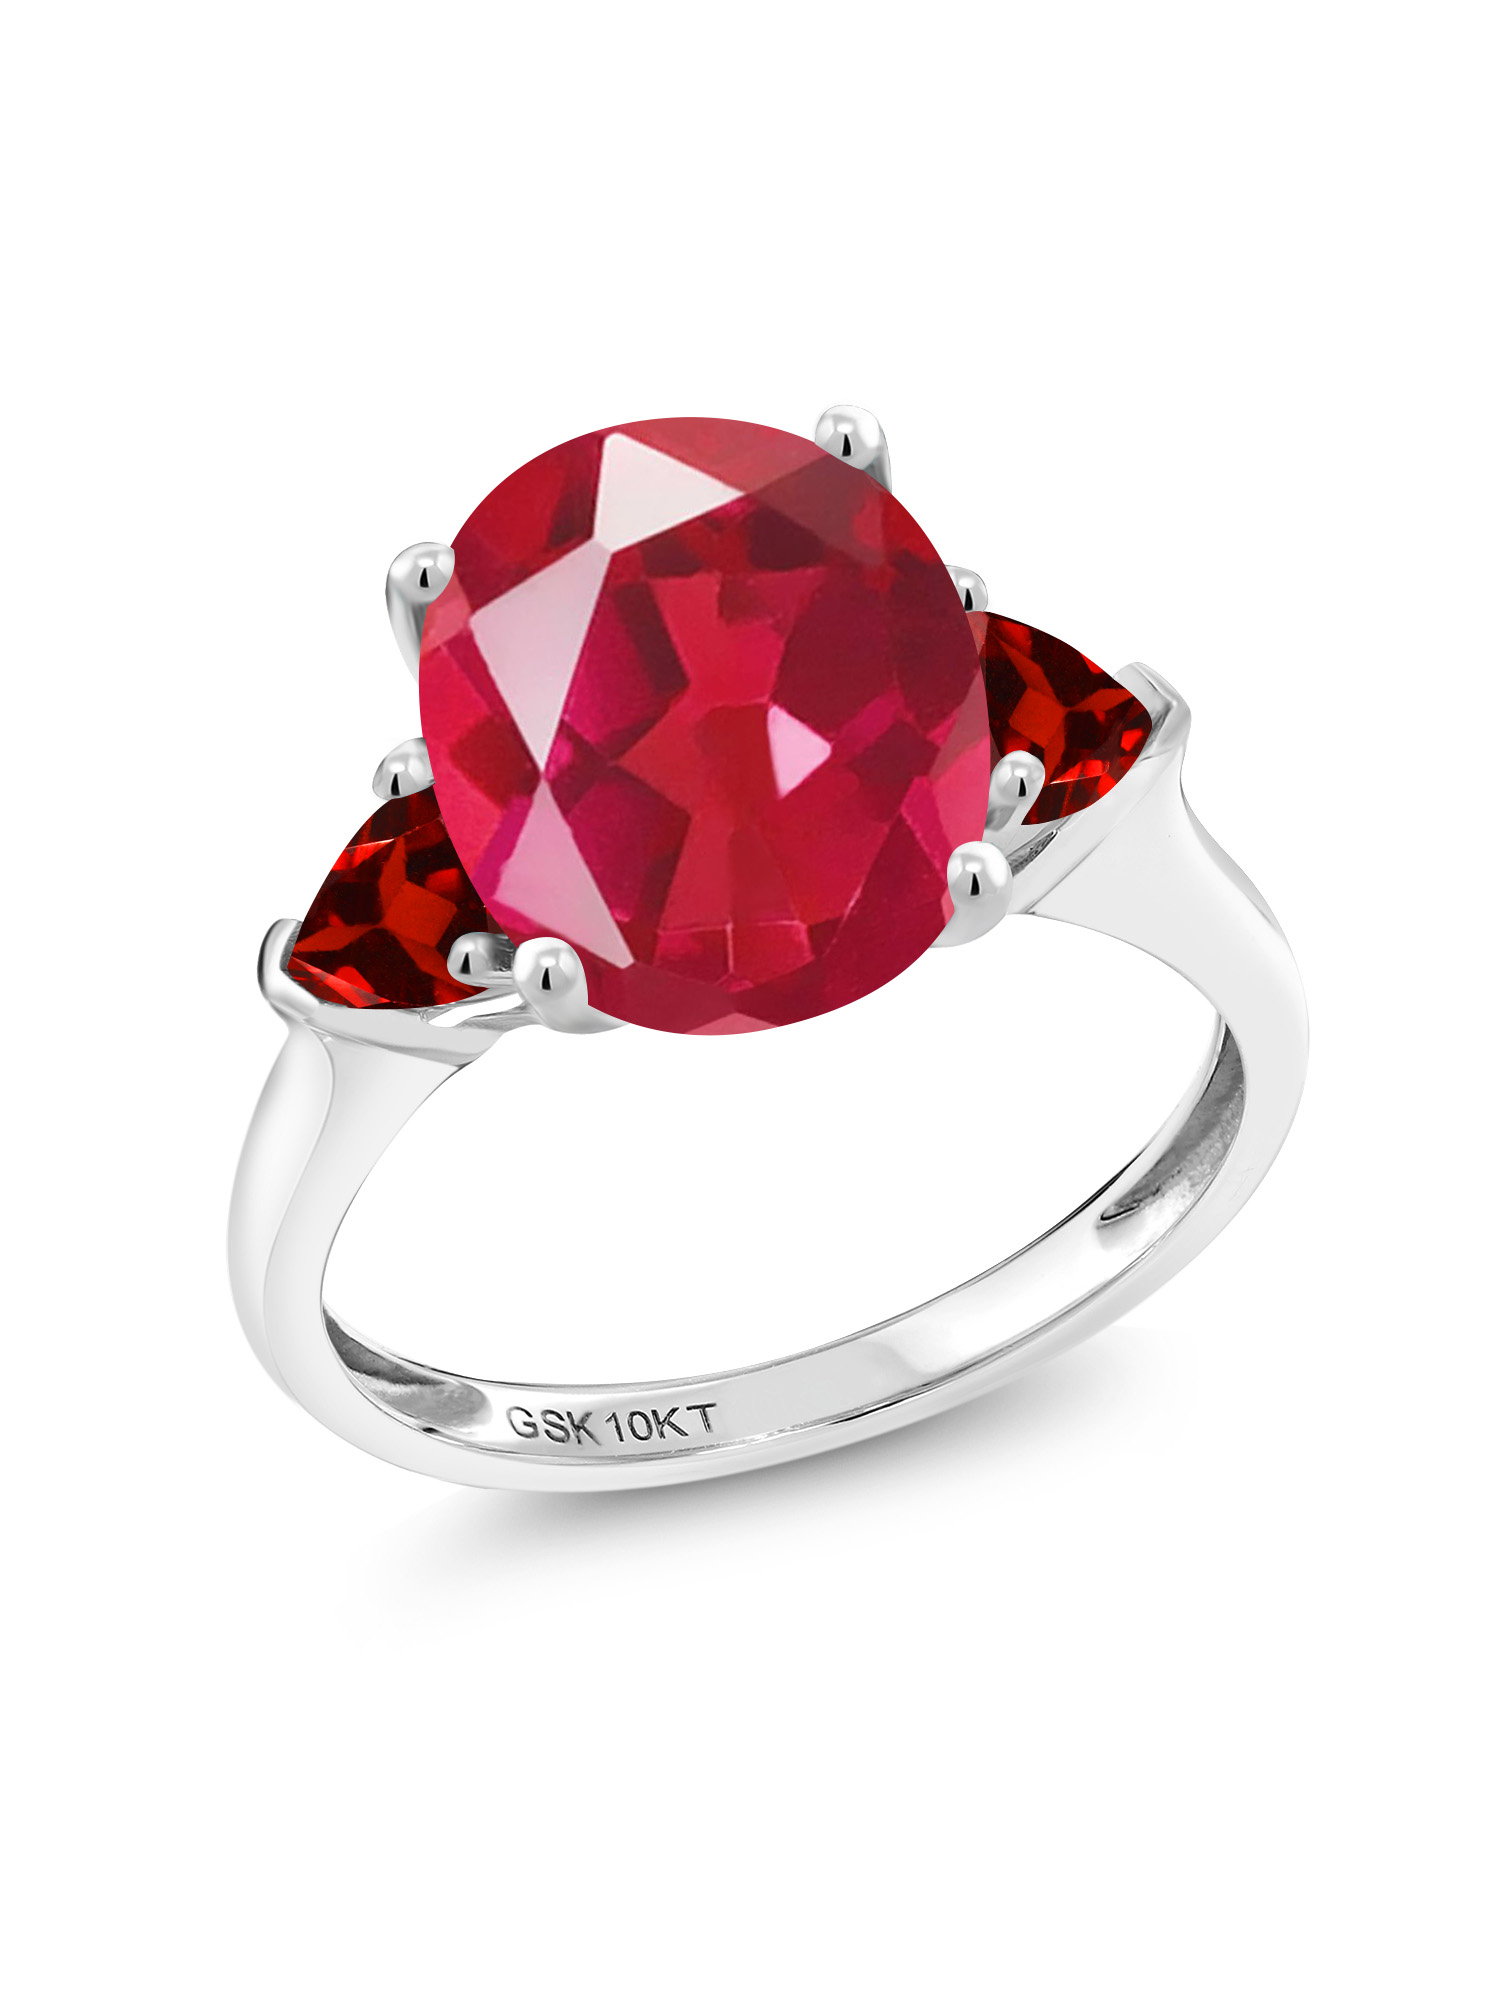 4.28 Ct Oval Last Dance Pink Mystic Quartz Red Garnet 10K White Gold Ring by